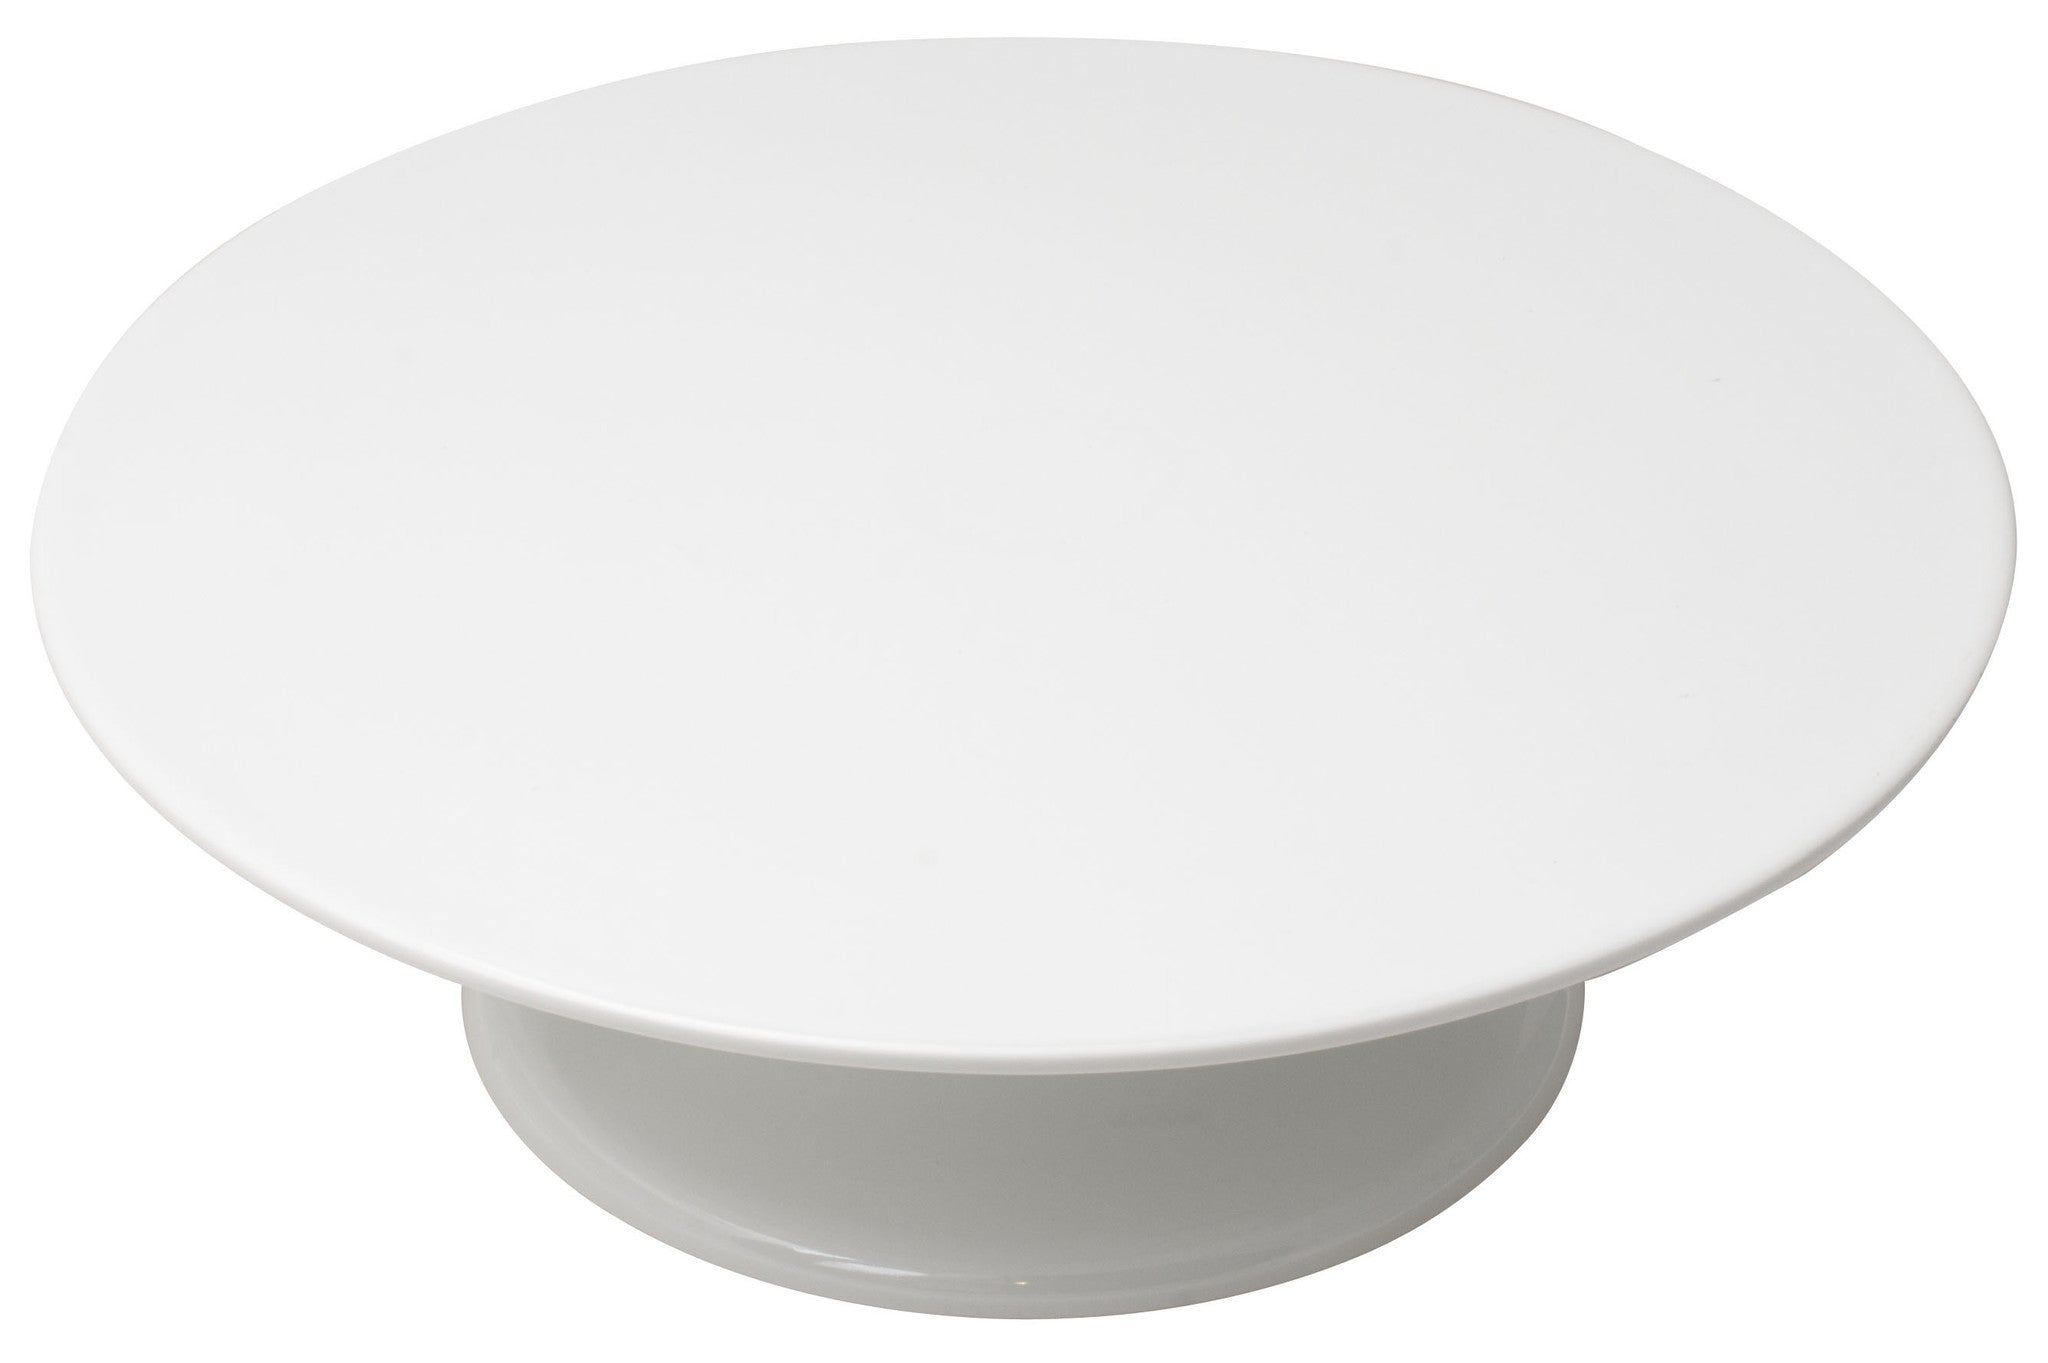 Thermohauser Melamine Rotating Cake Plate / Stand 32x10 cm White  sc 1 st  Pantry Pursuits & Thermohauser Melamine Rotating Cake Stand White Singapore - Pantry ...